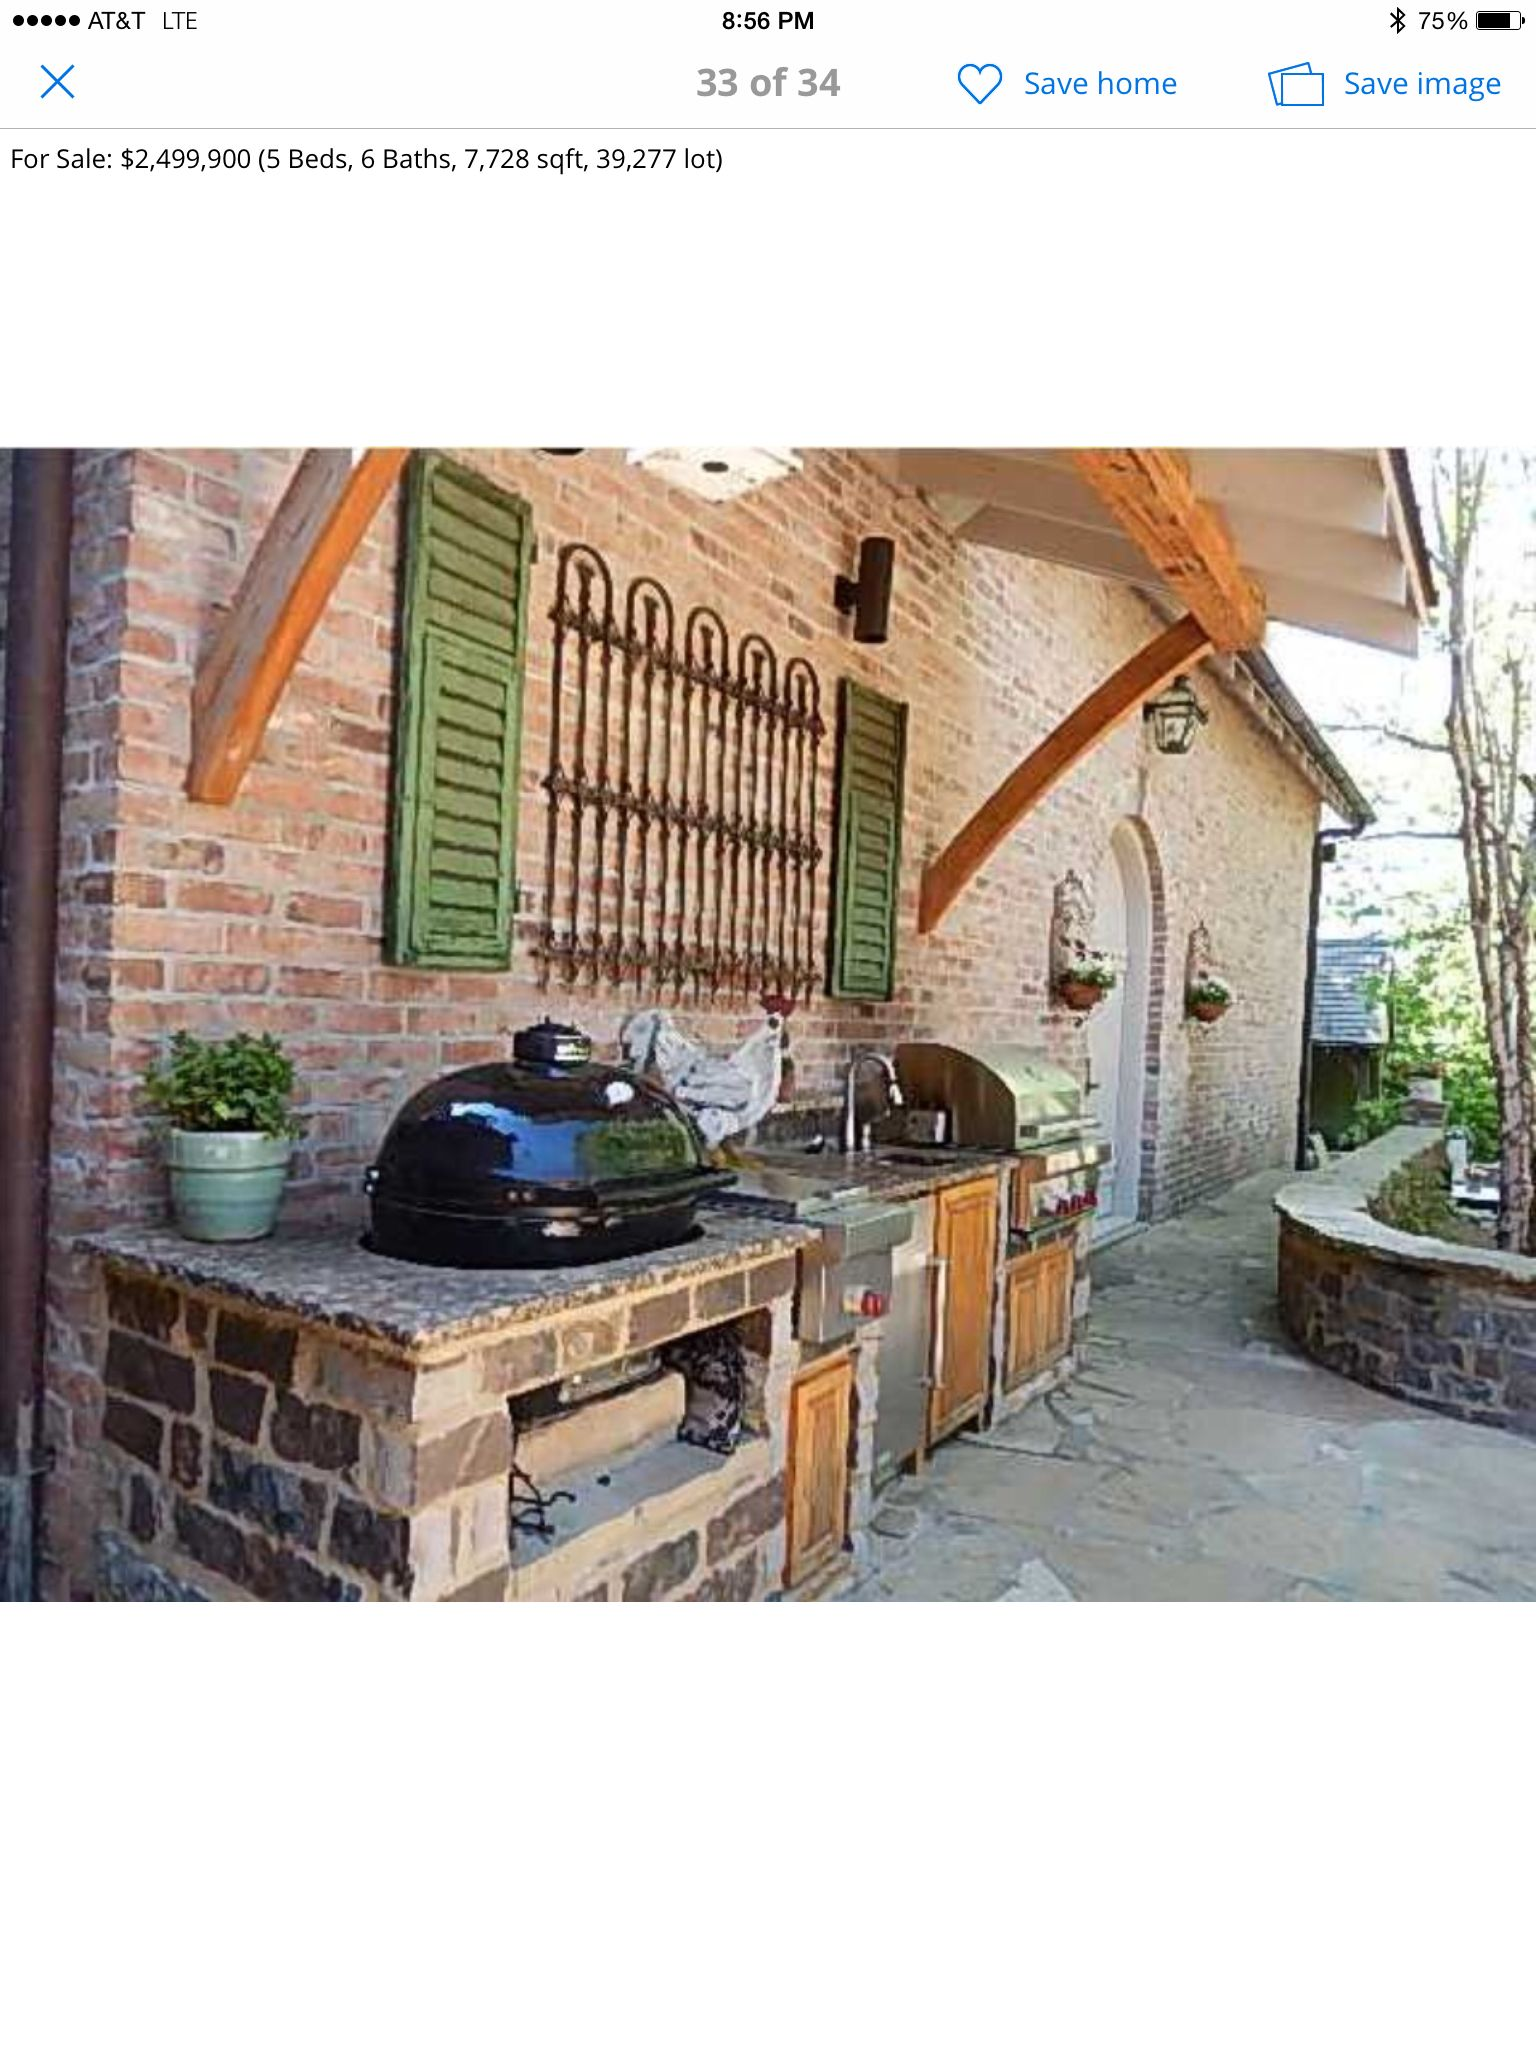 Easy outdoor grill station   Patio, Outdoor grill, Outdoor ... on Patio Grill Station id=85743